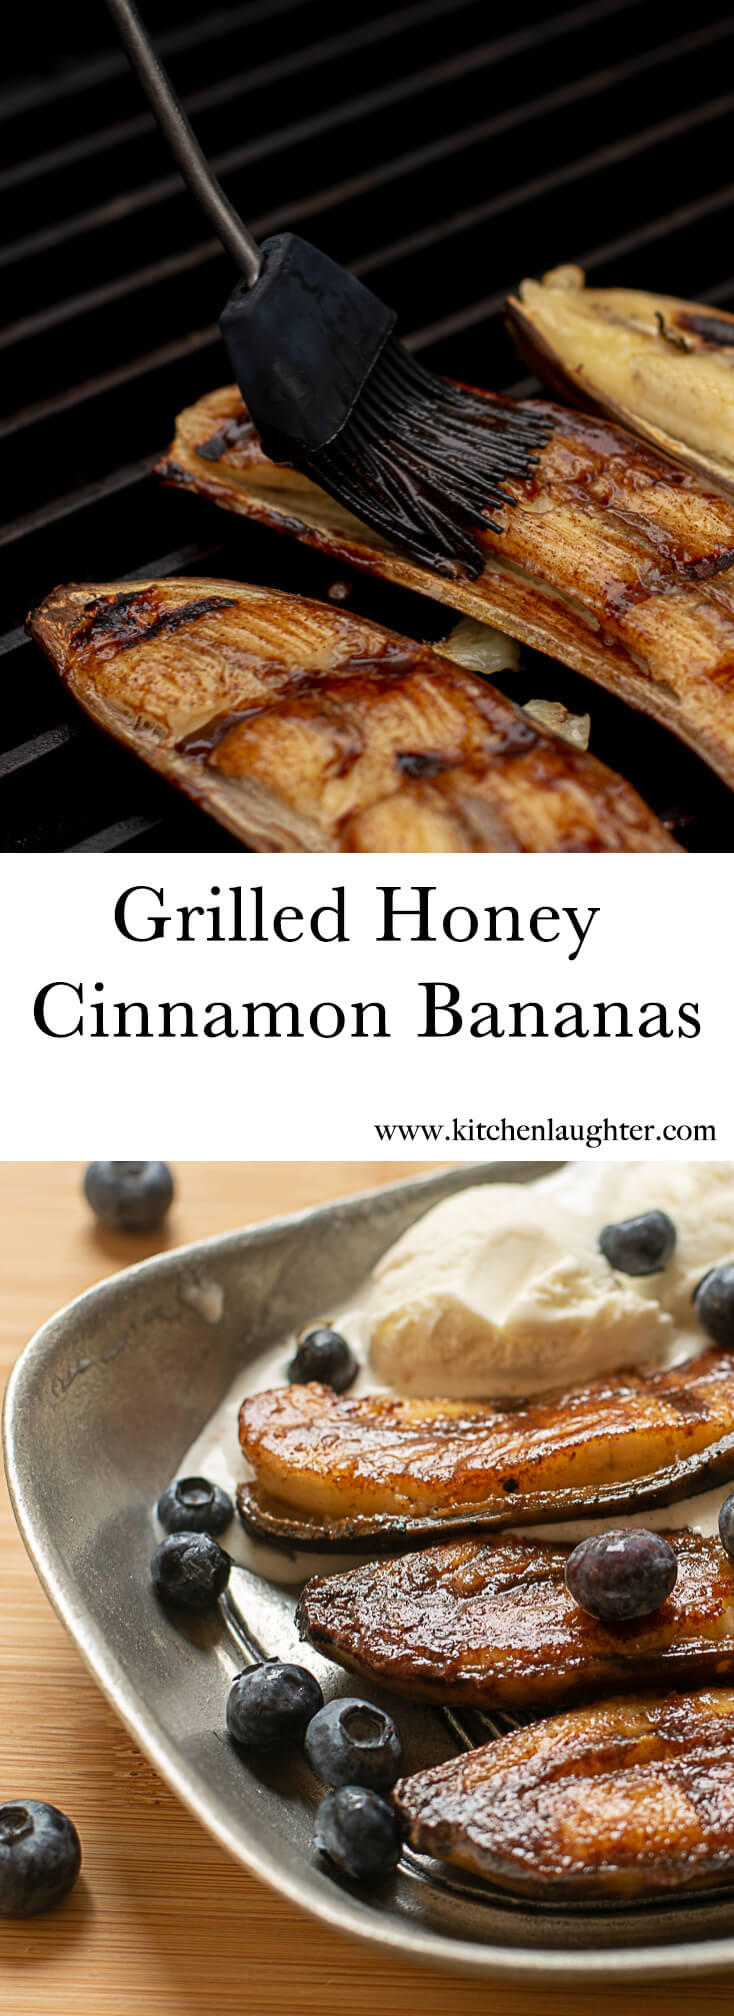 Grilled Honey Cinnamon Bananas #BGE #BigGreenEgg #Grill #GrilledFruit #Bananas #Dessert